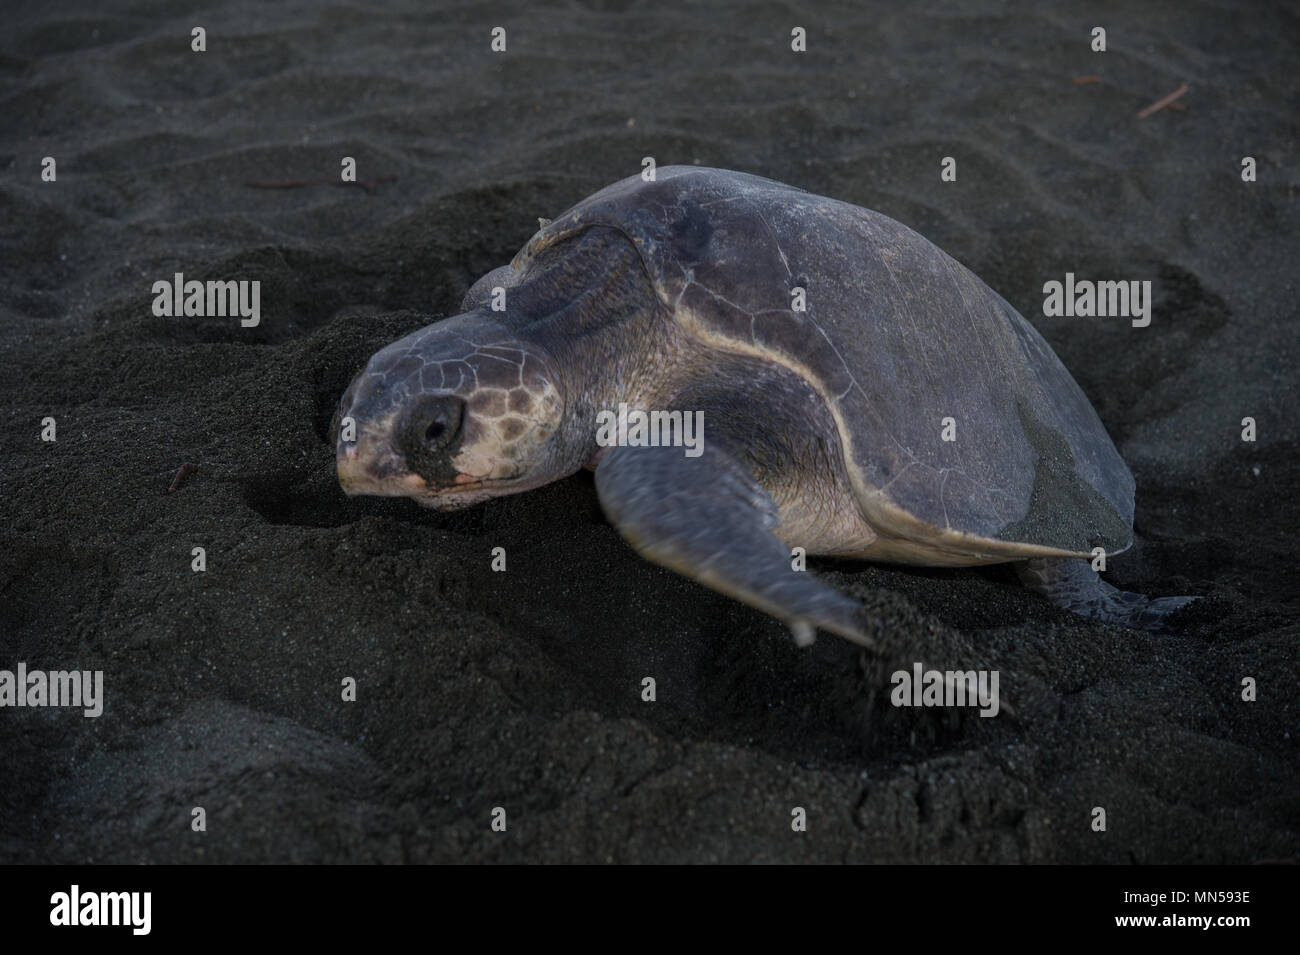 Olive Ridley Green Turtle, Lepidochelys olivacea, during spawning, Cheloniidae, Carate Beach, Corcovado National Park, Costa Rica, Centroamerica - Stock Image